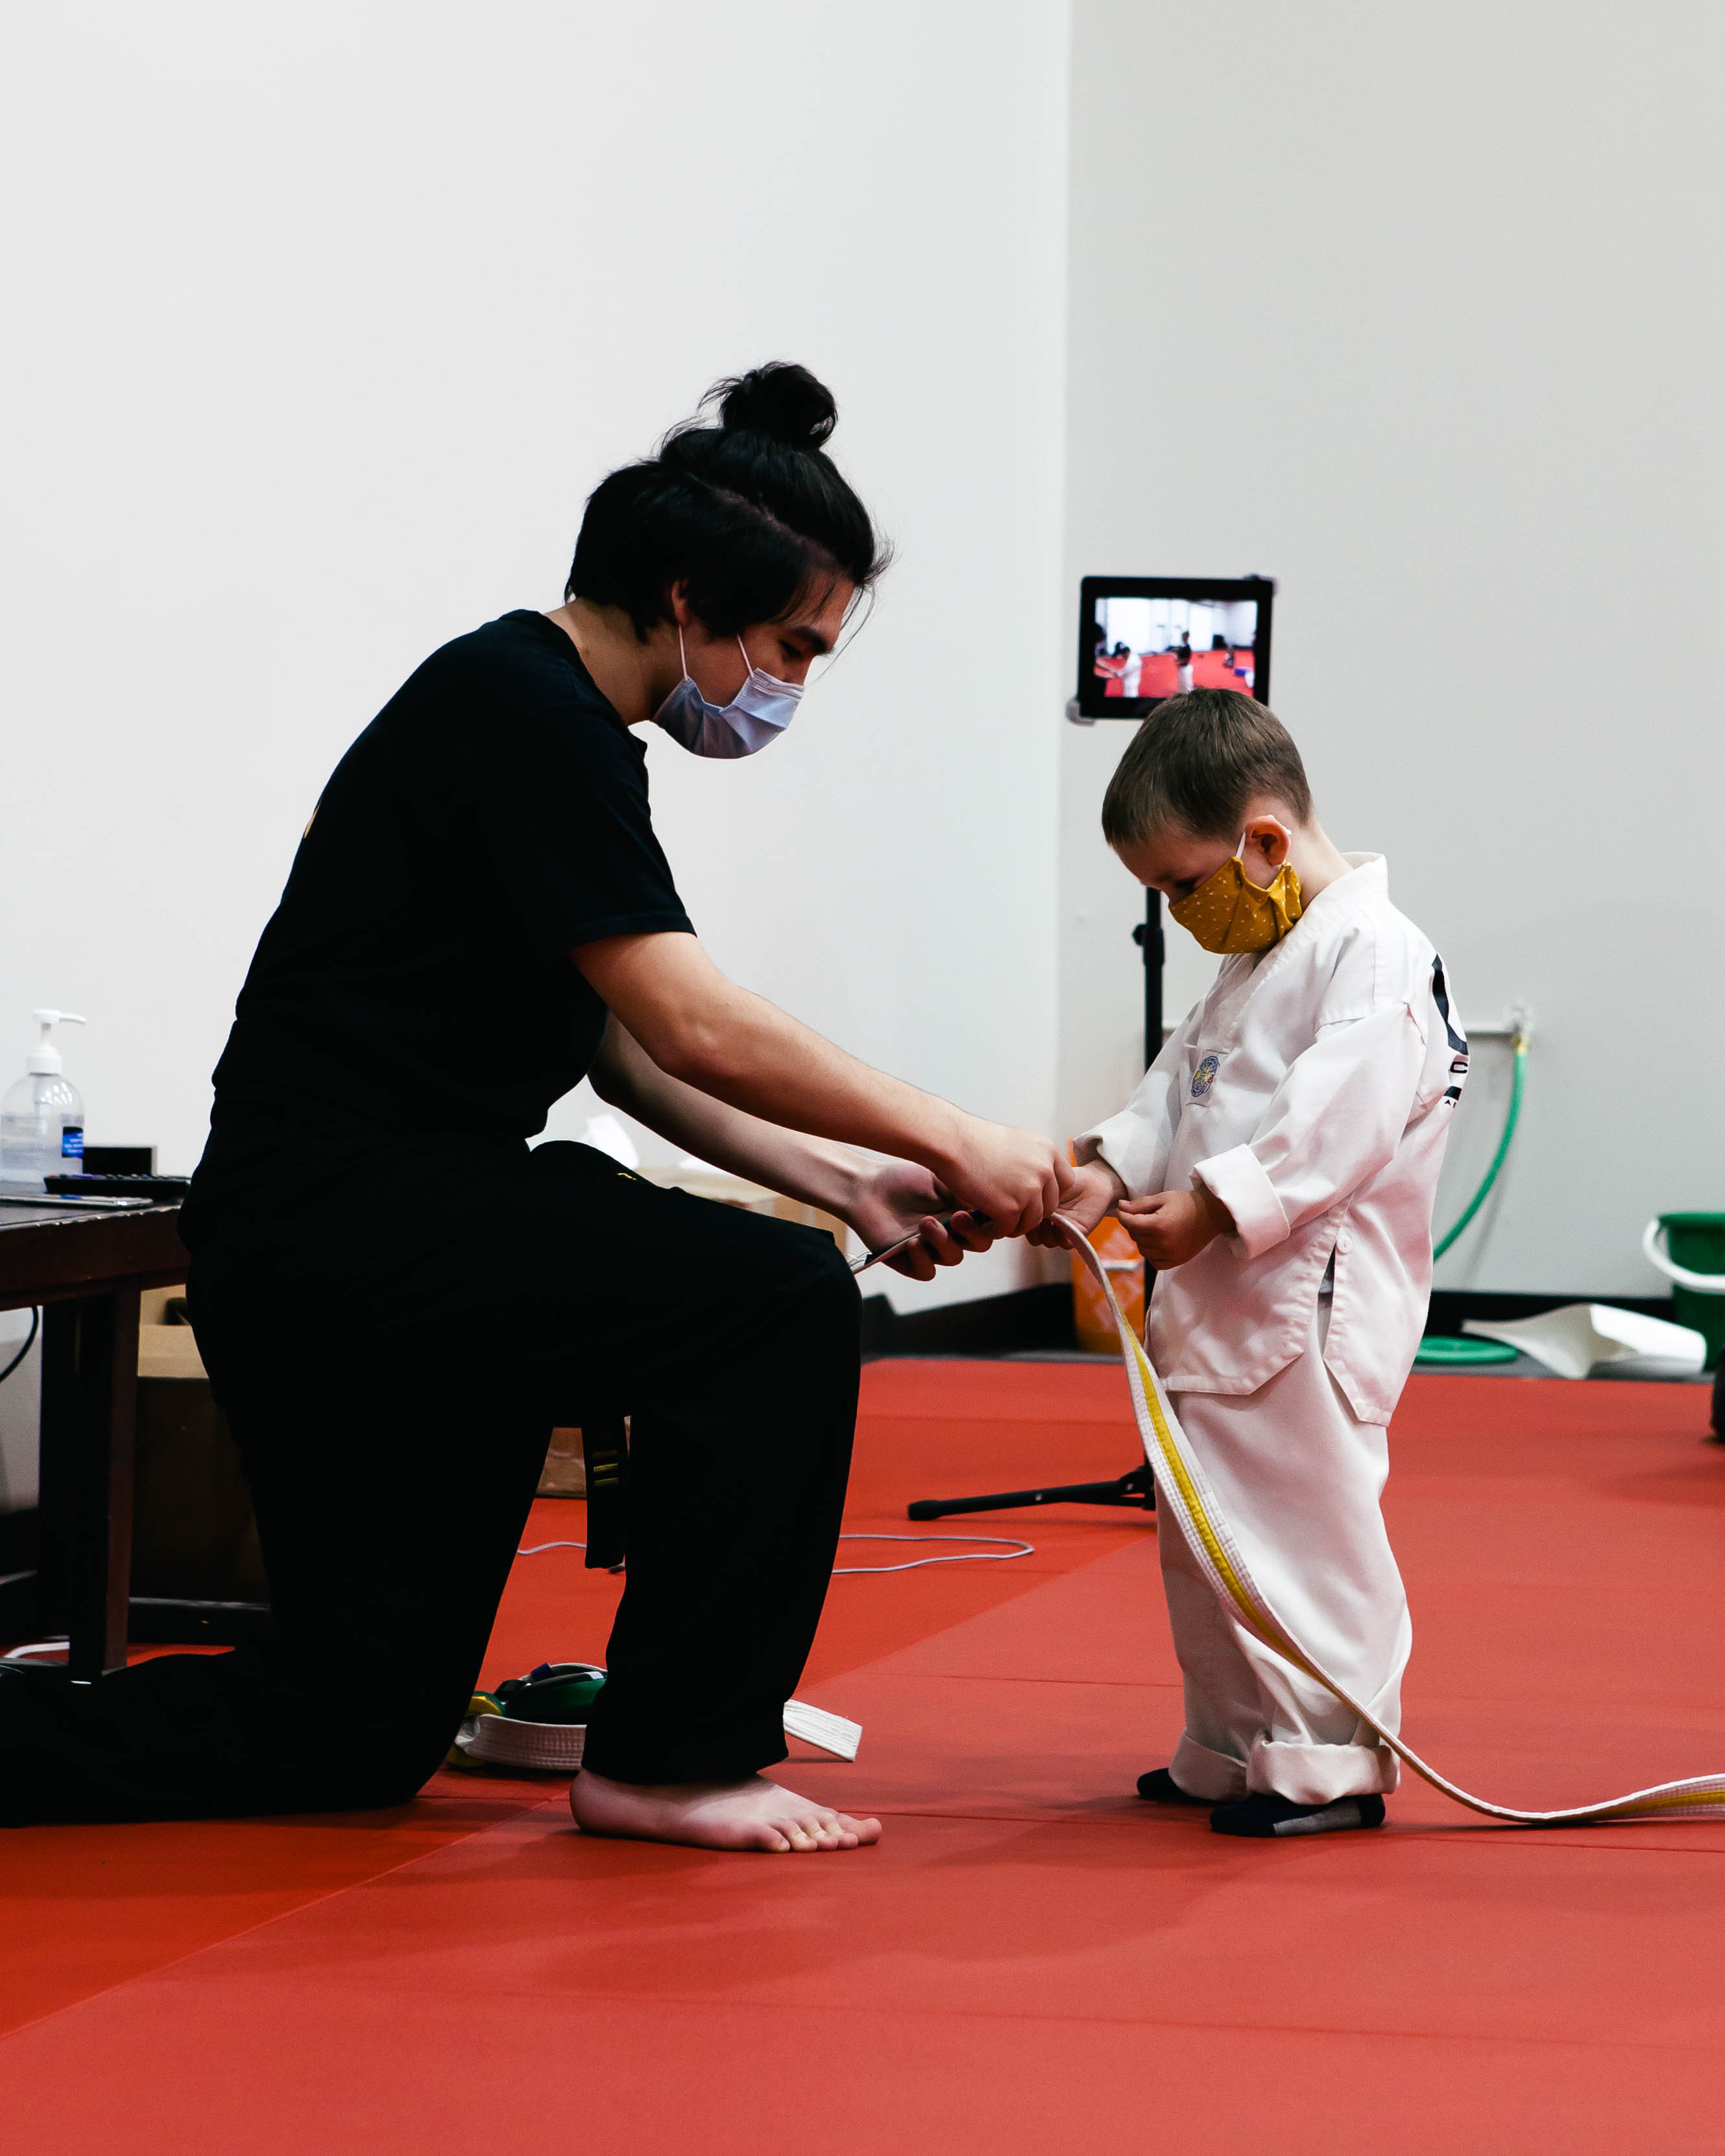 A trainer instructing kid